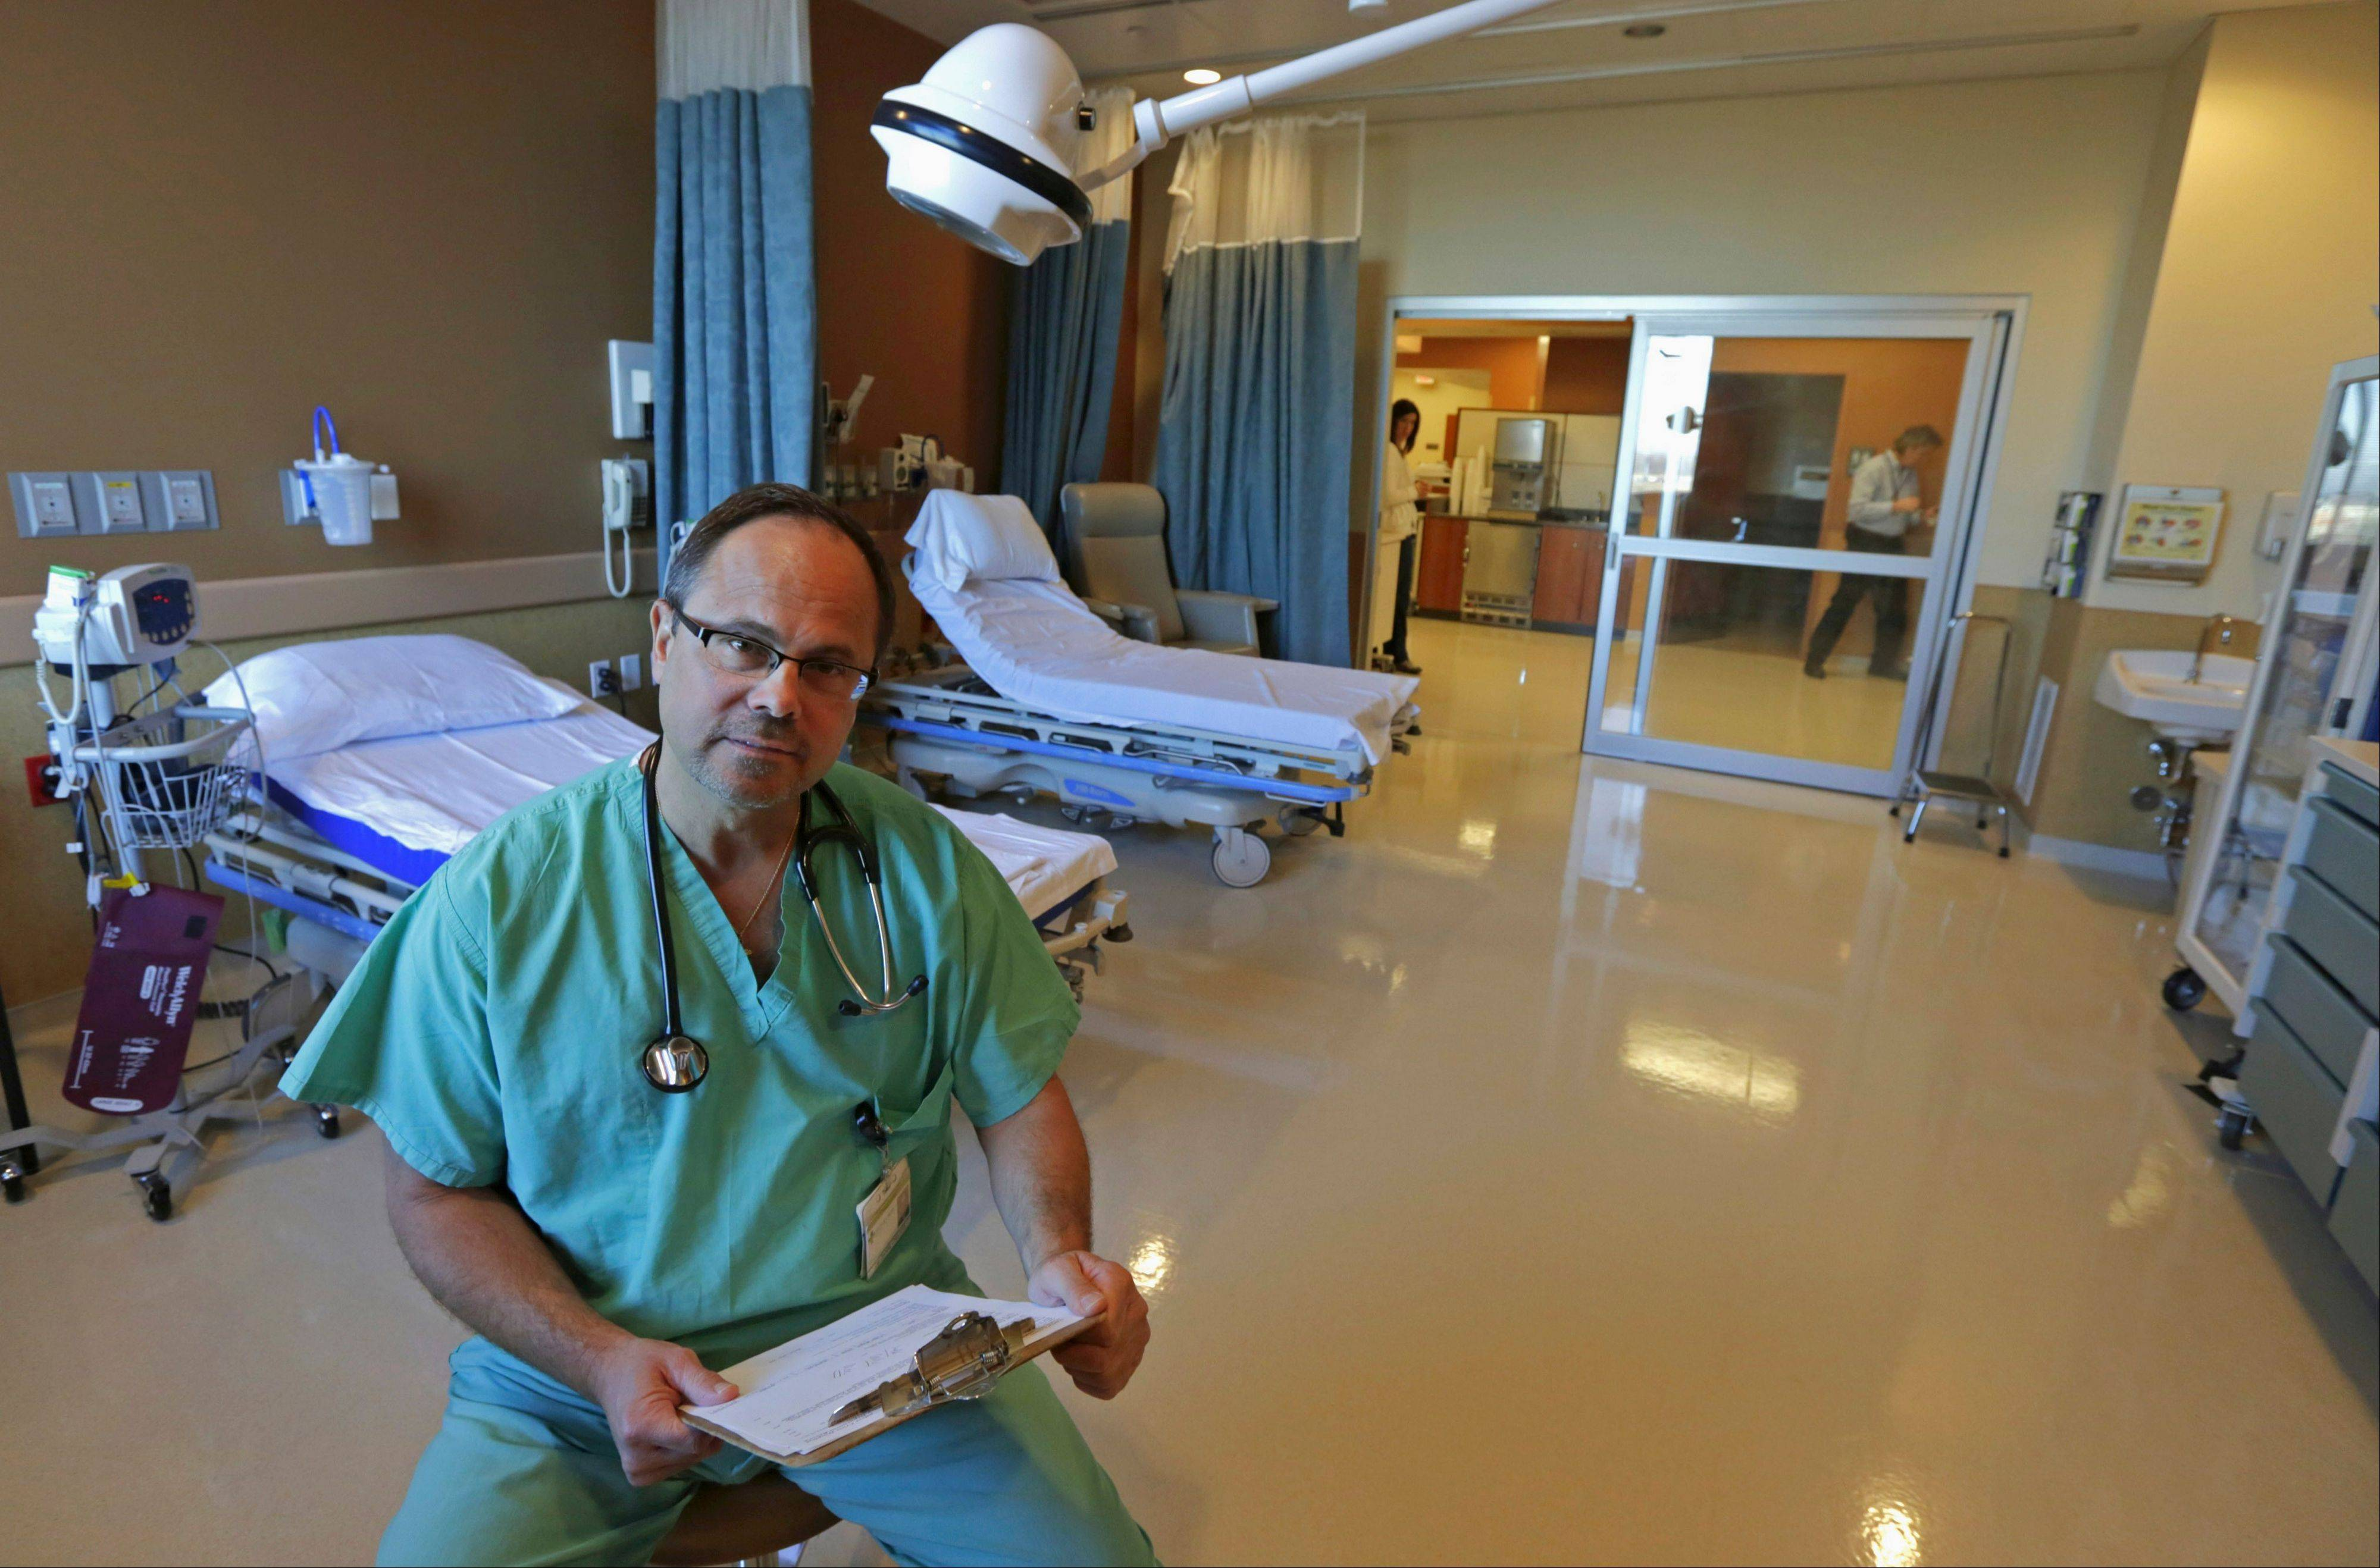 Dr. Daniel Checco sits in the critical care procedure room at Silver Cross Emergency Care Center in Homer Glen.